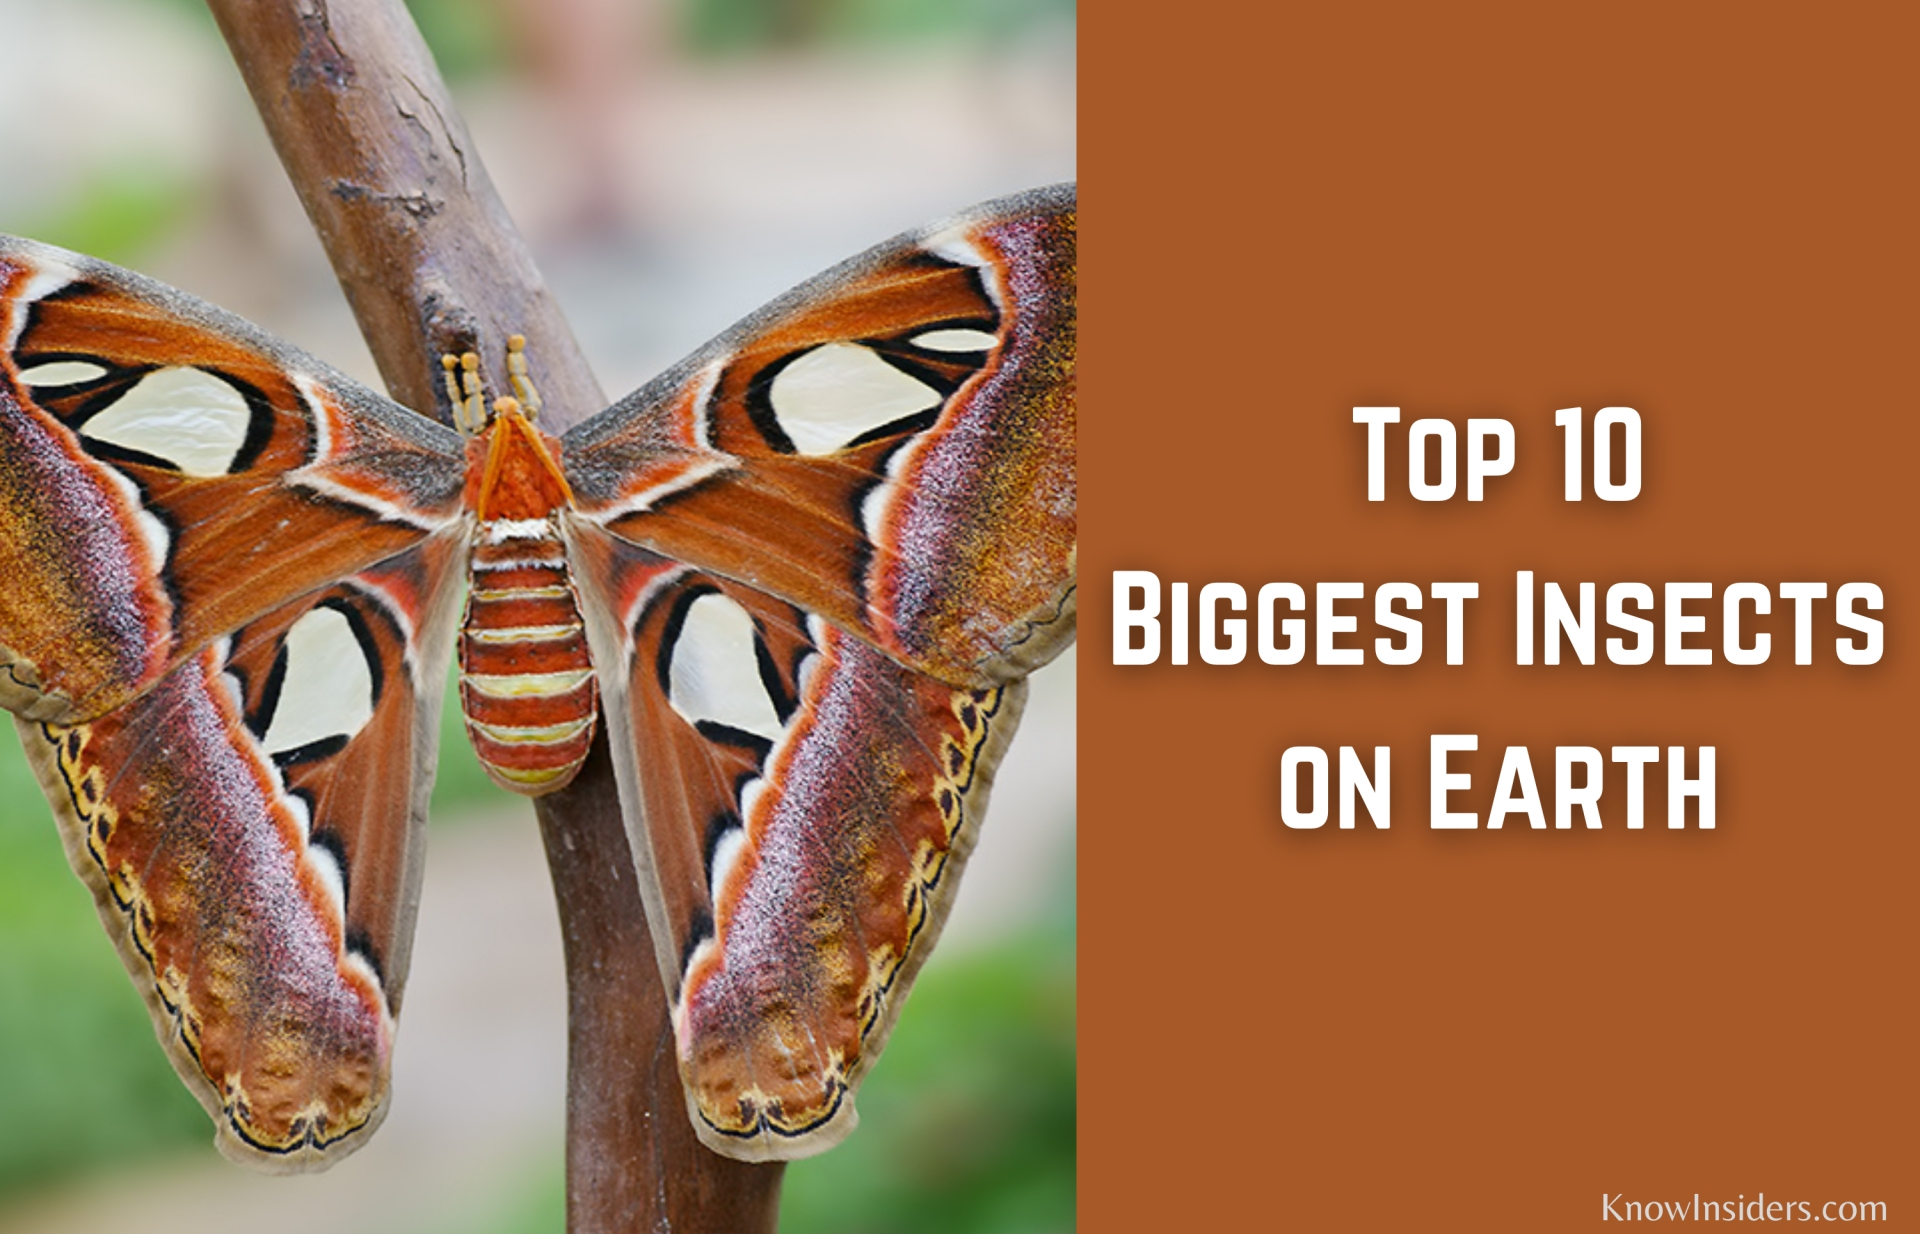 Top 10 Biggest Insects in the World